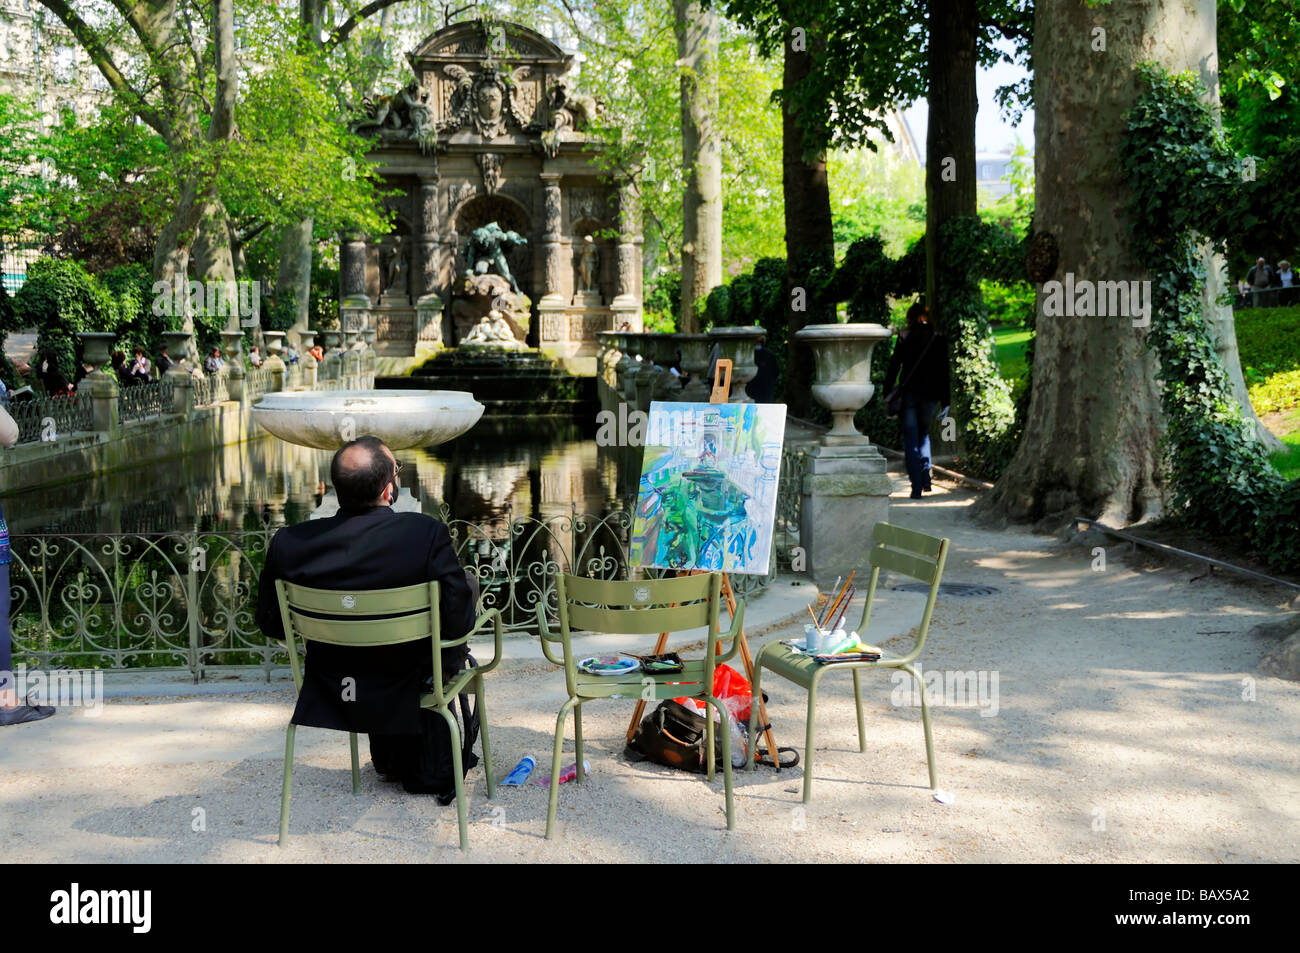 jardin du luxembourg paris france man painting at fontaine de stock photo royalty free image. Black Bedroom Furniture Sets. Home Design Ideas